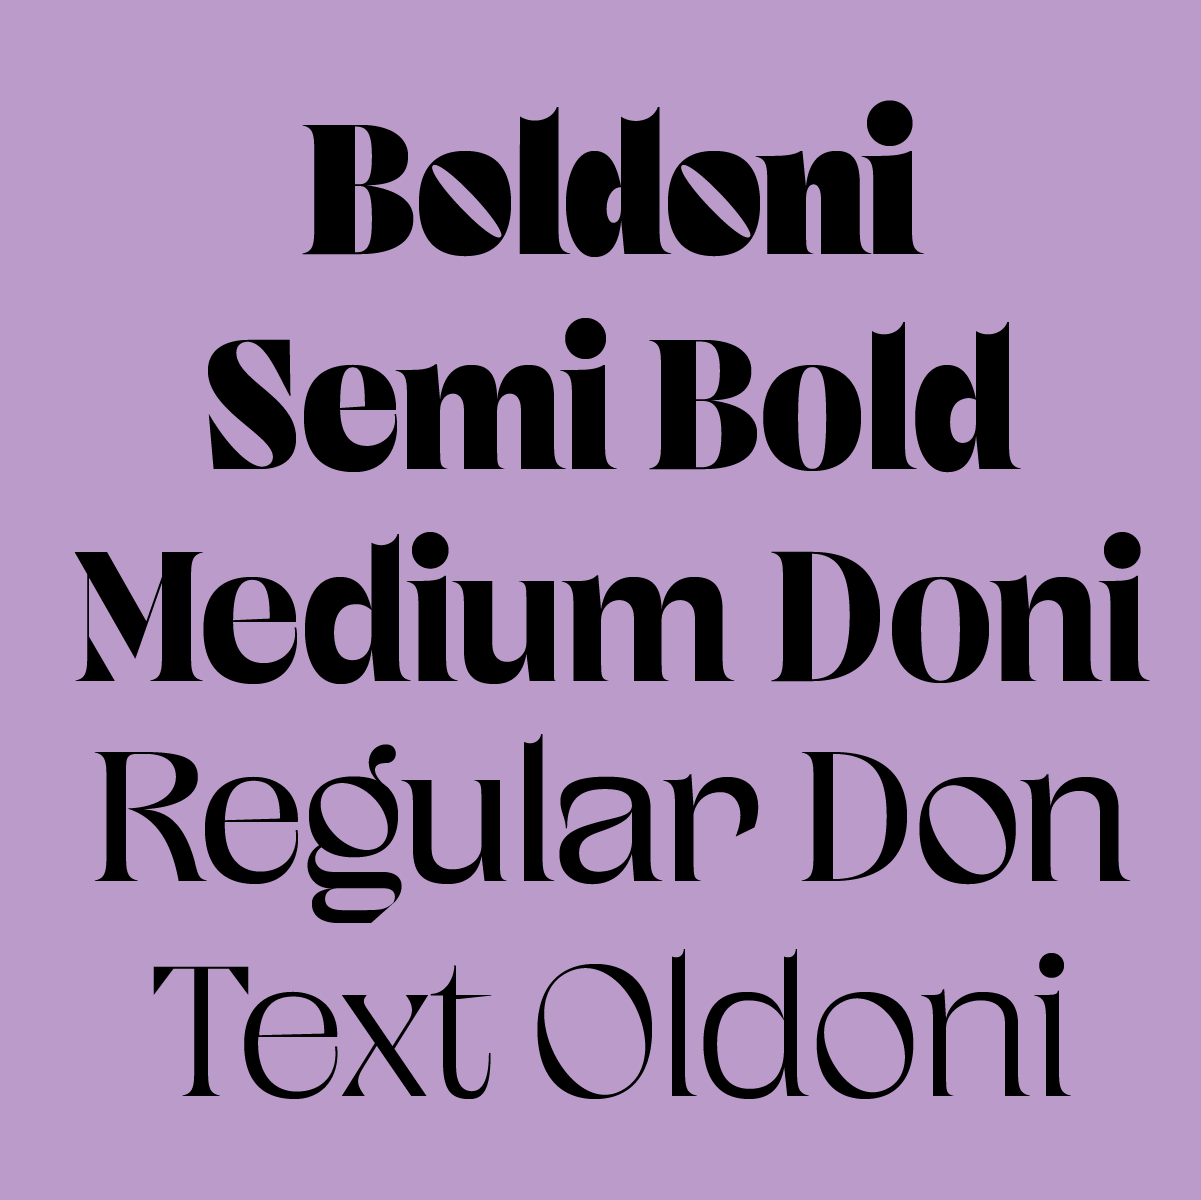 Boldoni is a new typeface designed by Andrei Robu for Typeverything.com